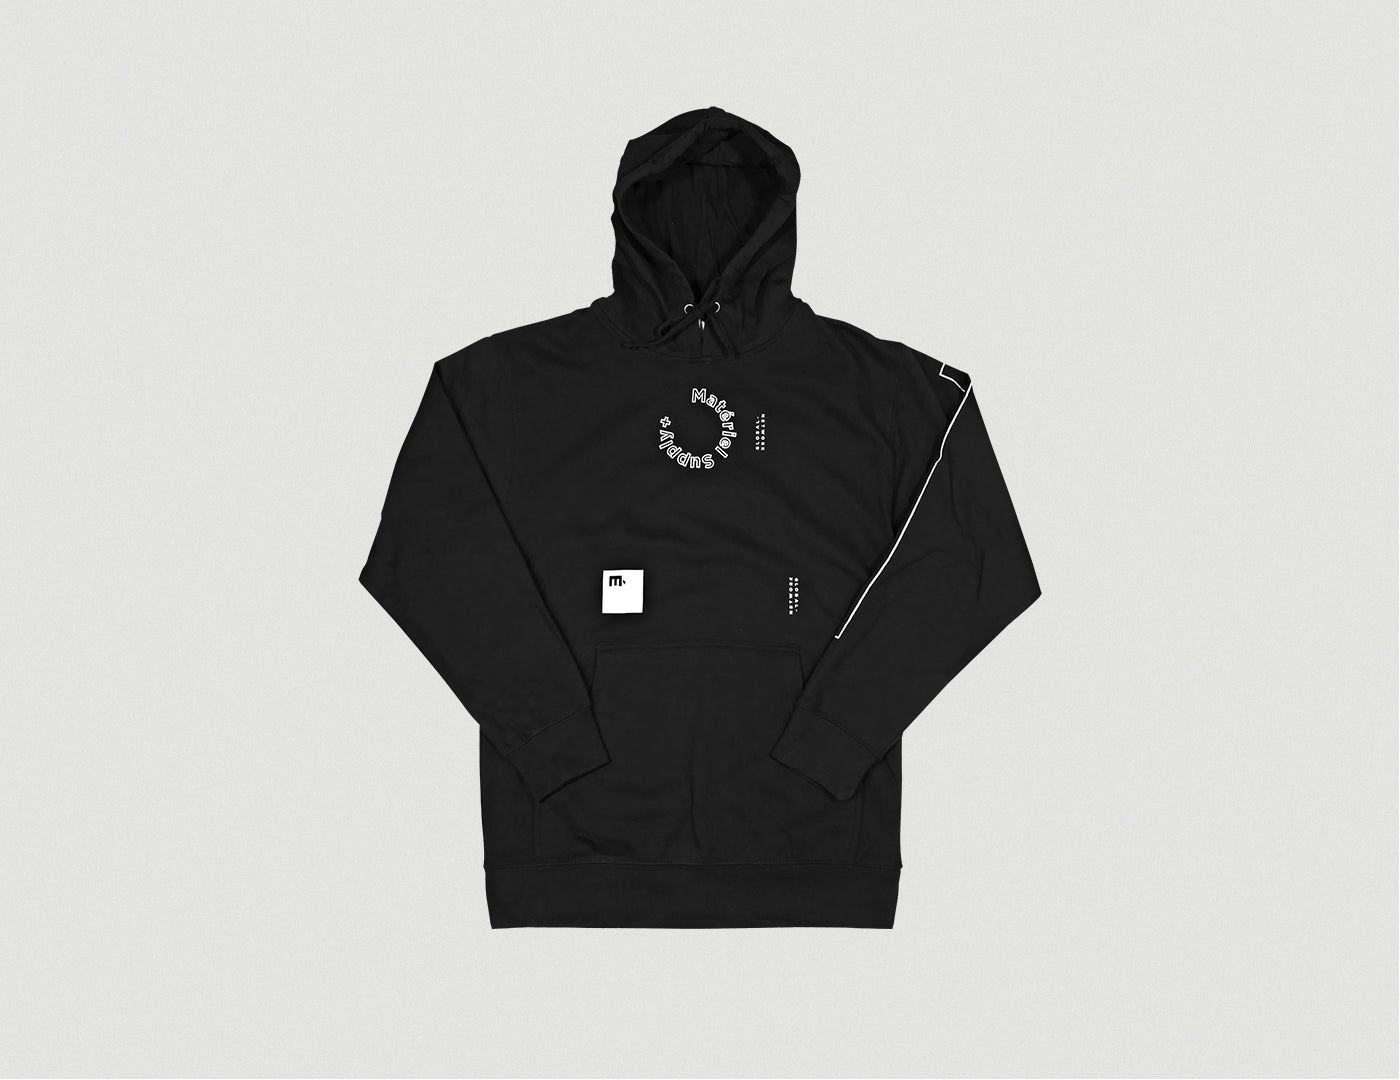 BPM HOODED SWEATSHIRT